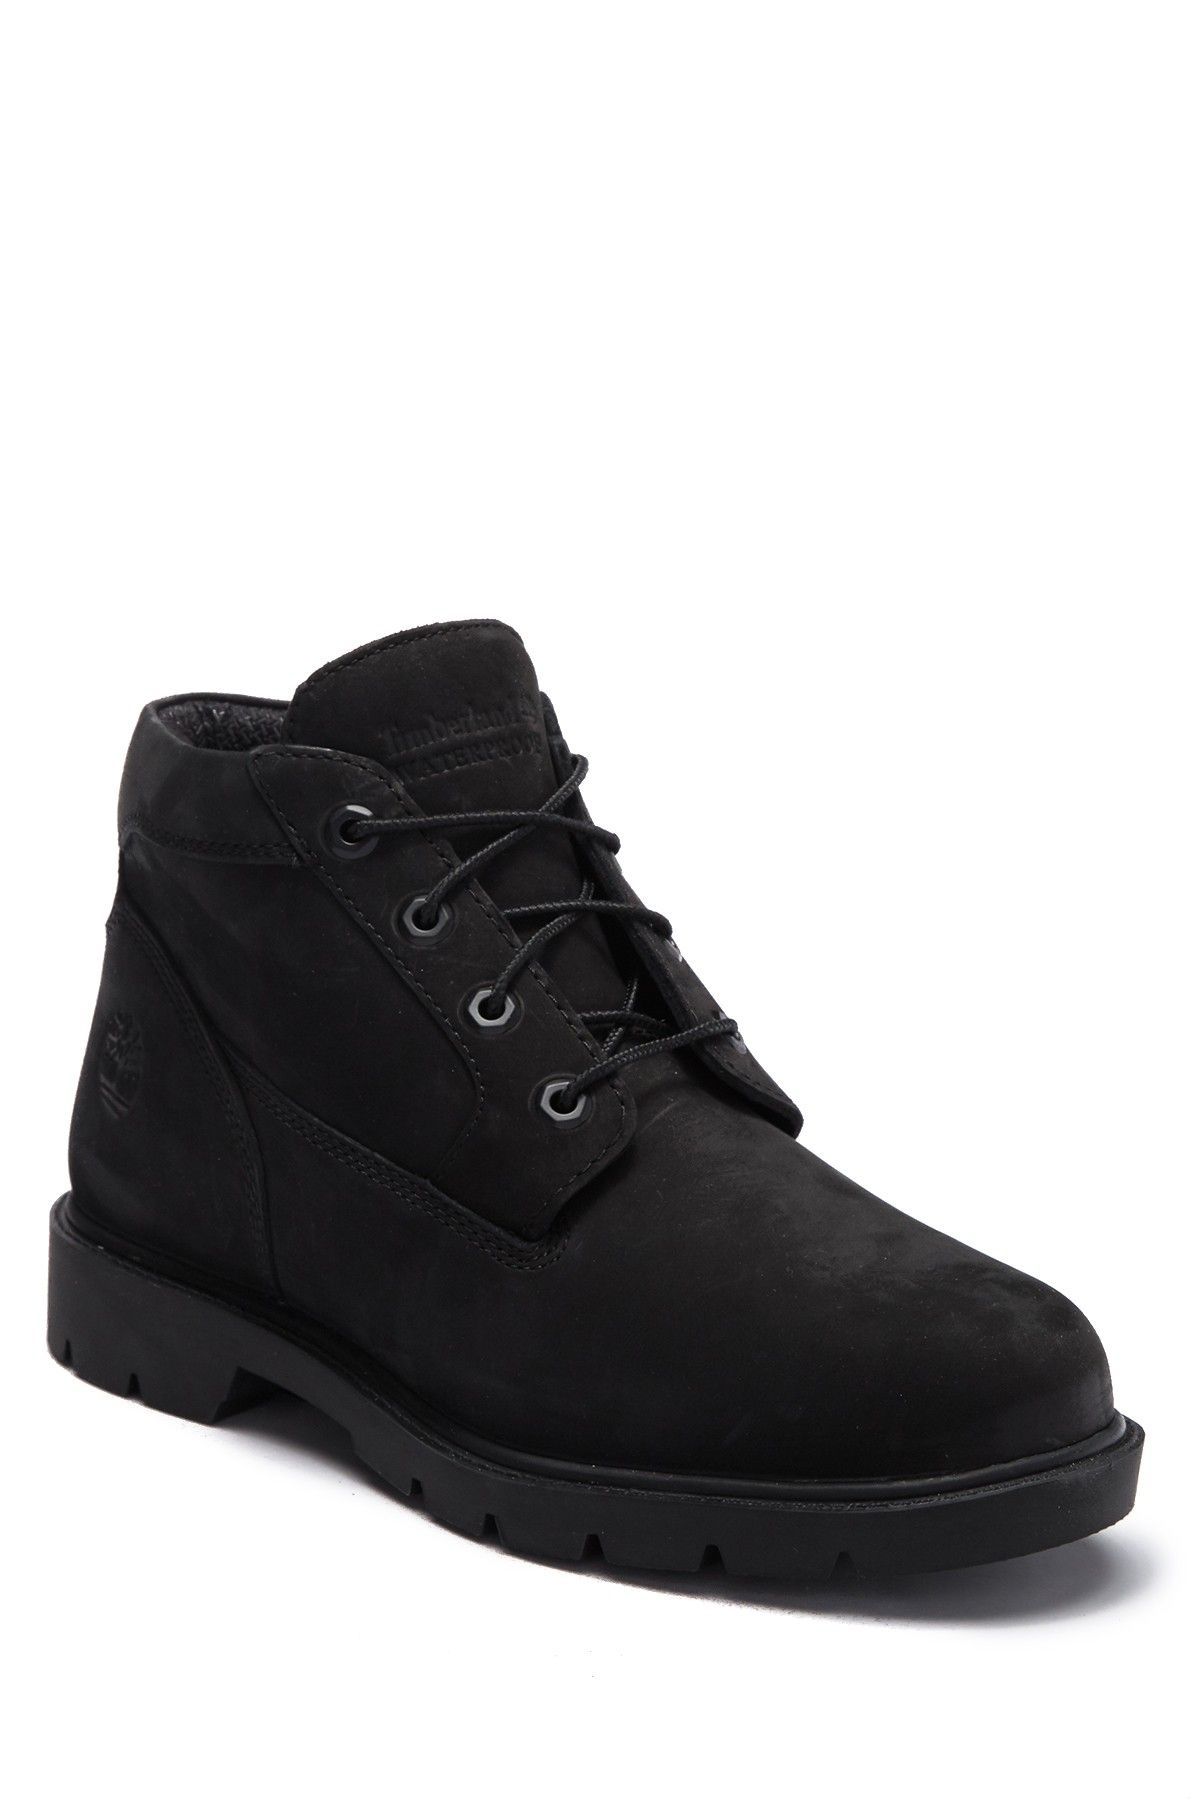 Timberland | Value Suede Chukka Boot